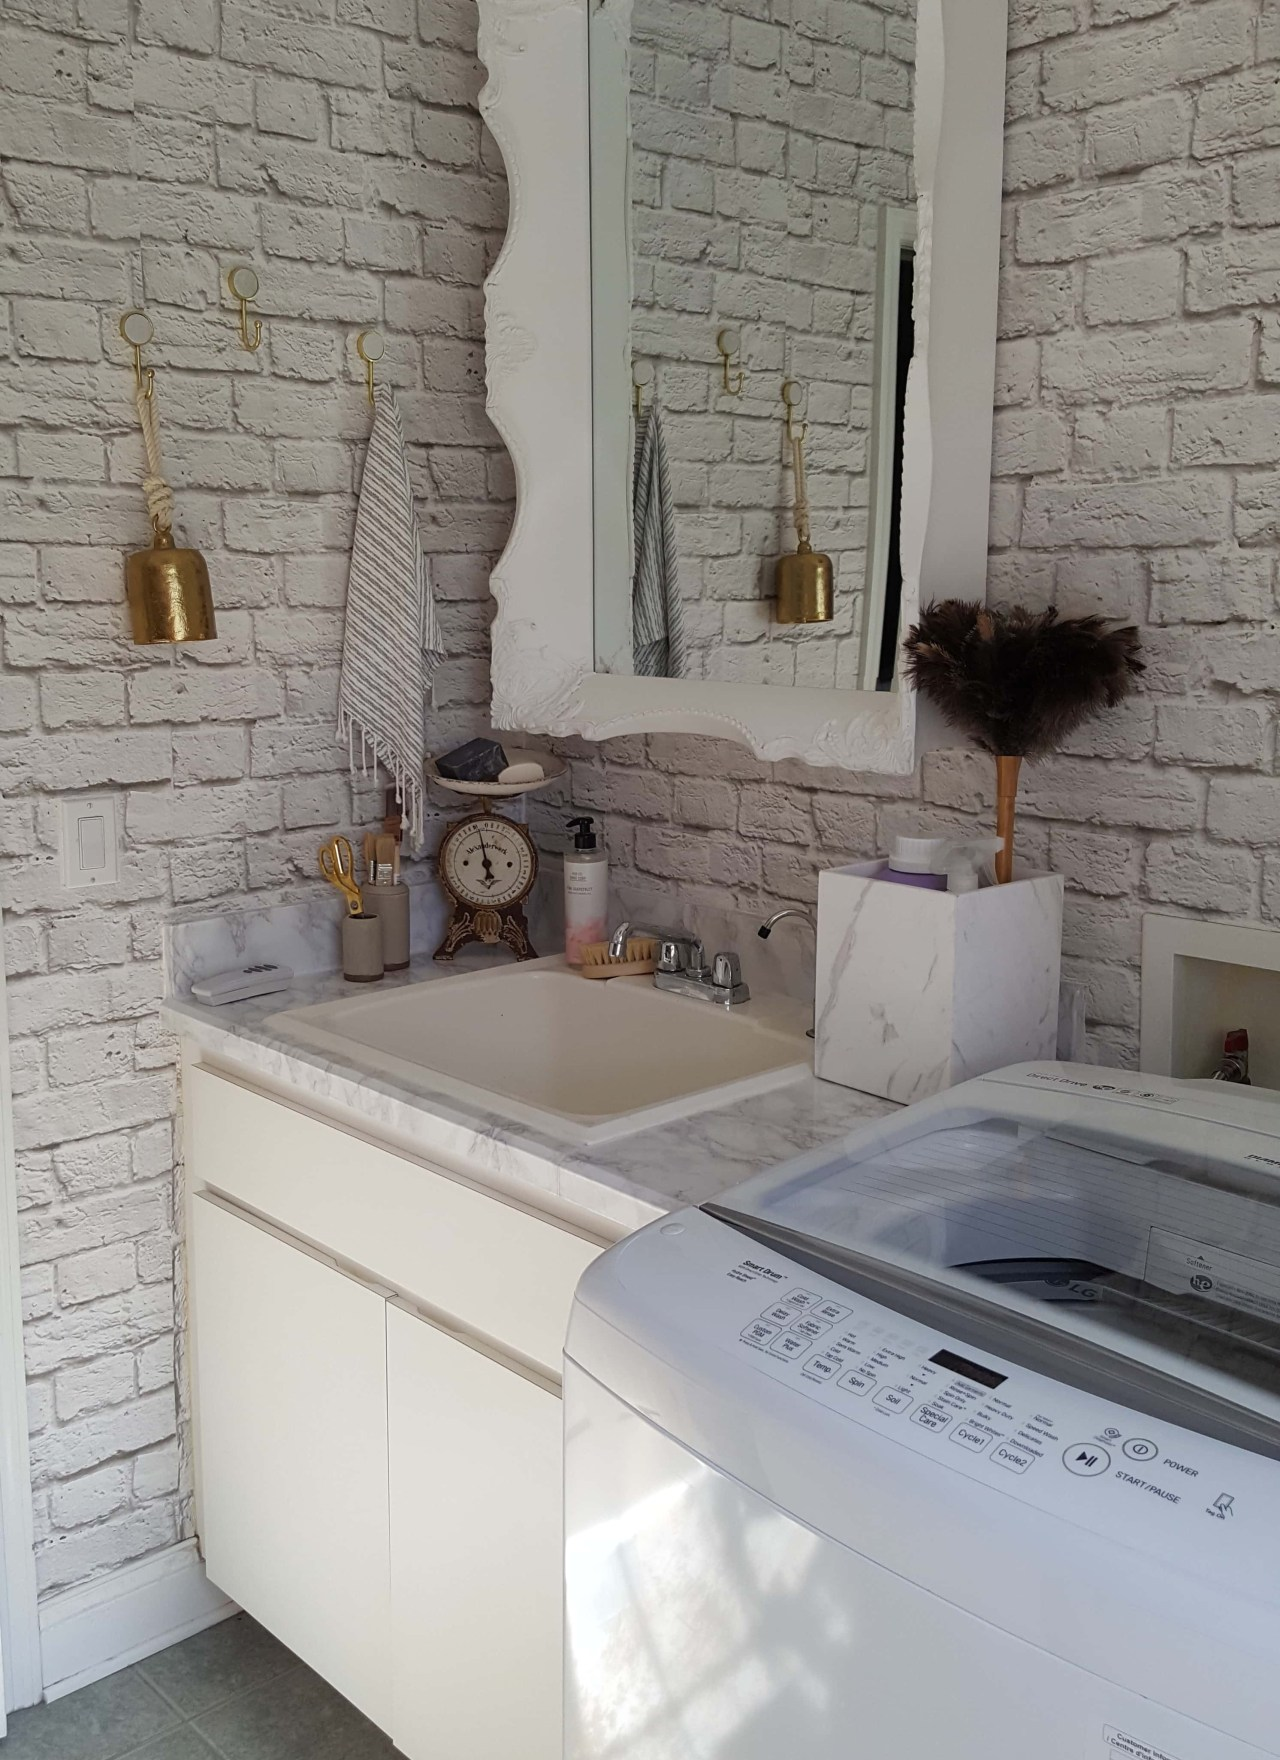 Urban Industrial Vintage Laundry Room Makeover Tips, Tricks and Sources